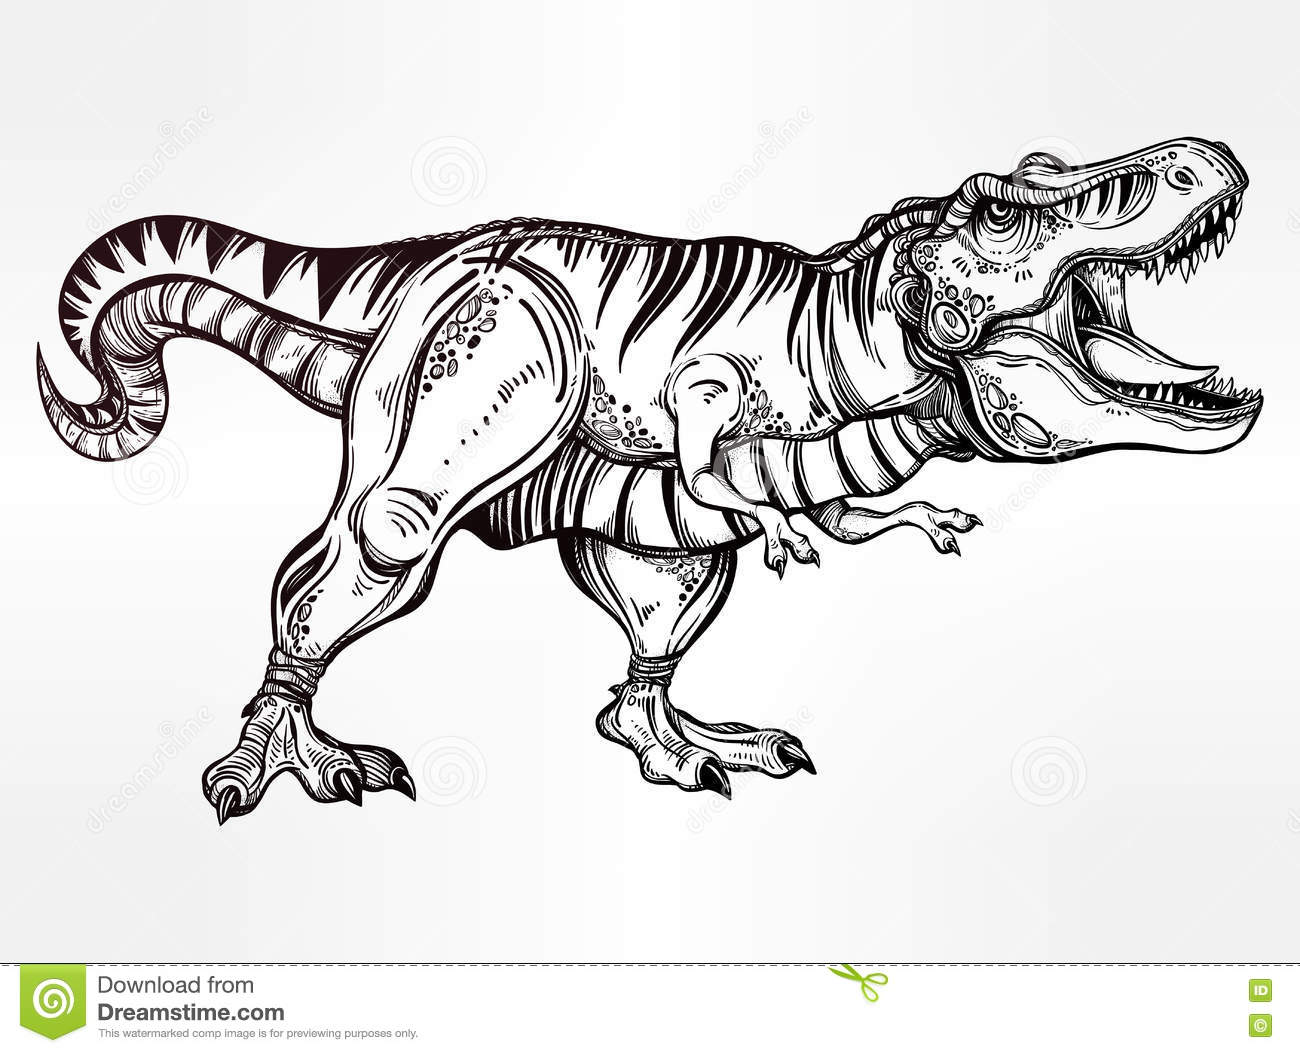 tyrannosaurus-dinosaur-vector-illustration-highly-detailed-t-rex-ideal-coloring-page-shirt-design-effect-logo-tattoo-75675736